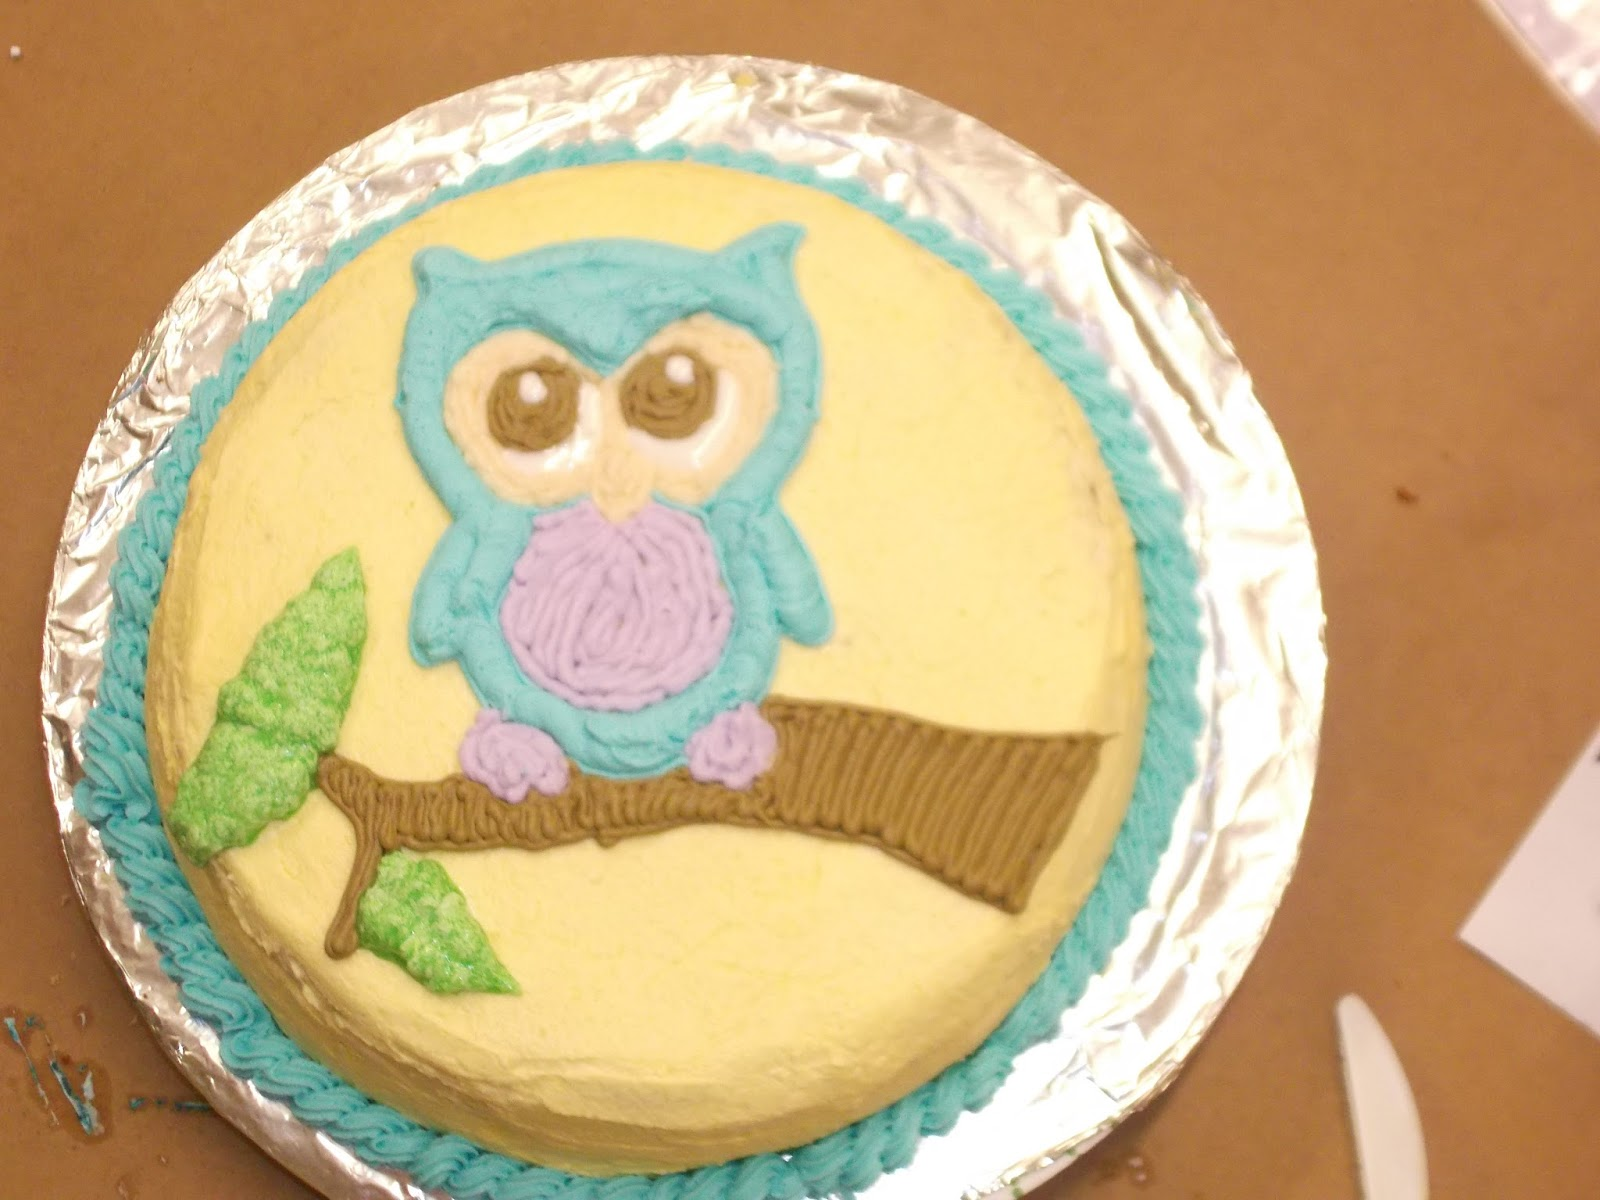 Cake Decorating Classes Ystrad Mynach : Fun with Cake Decorating!: Student Cakes From Class 1